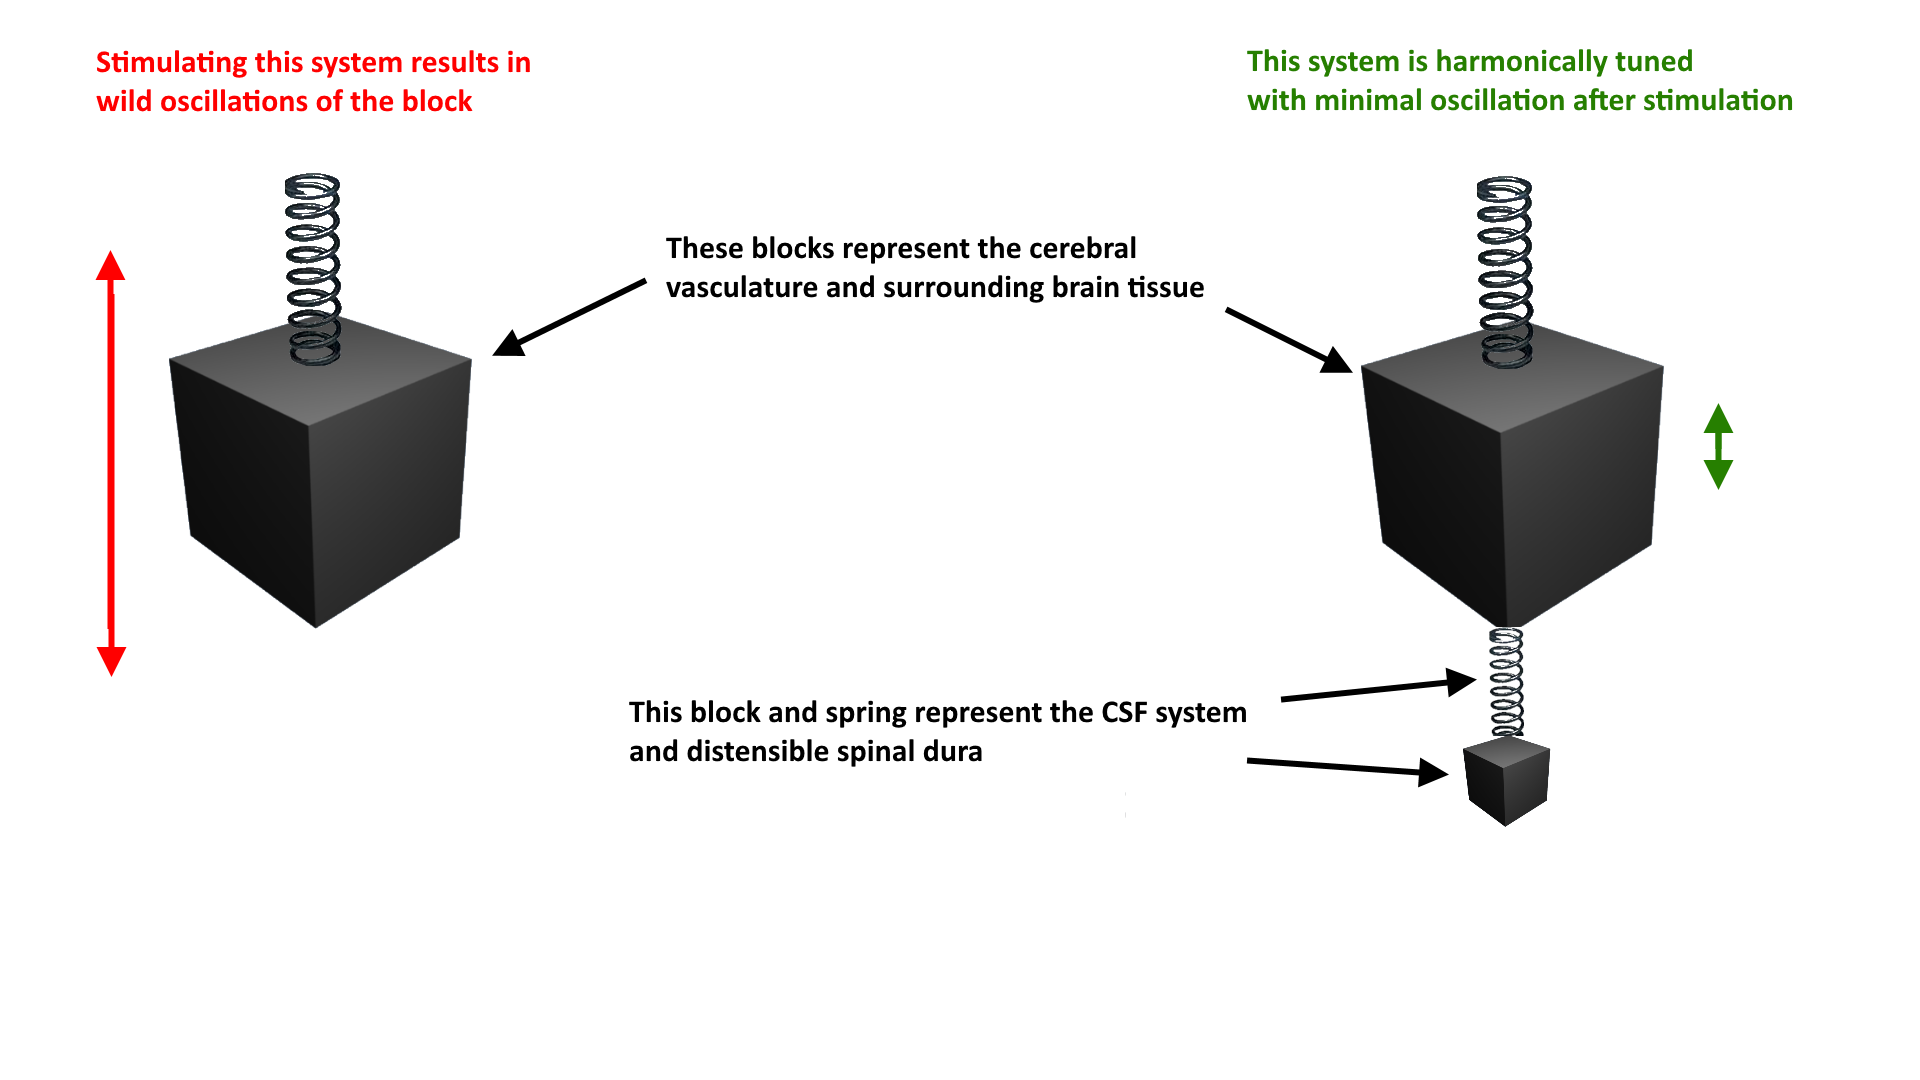 csf system is harmonically tuned